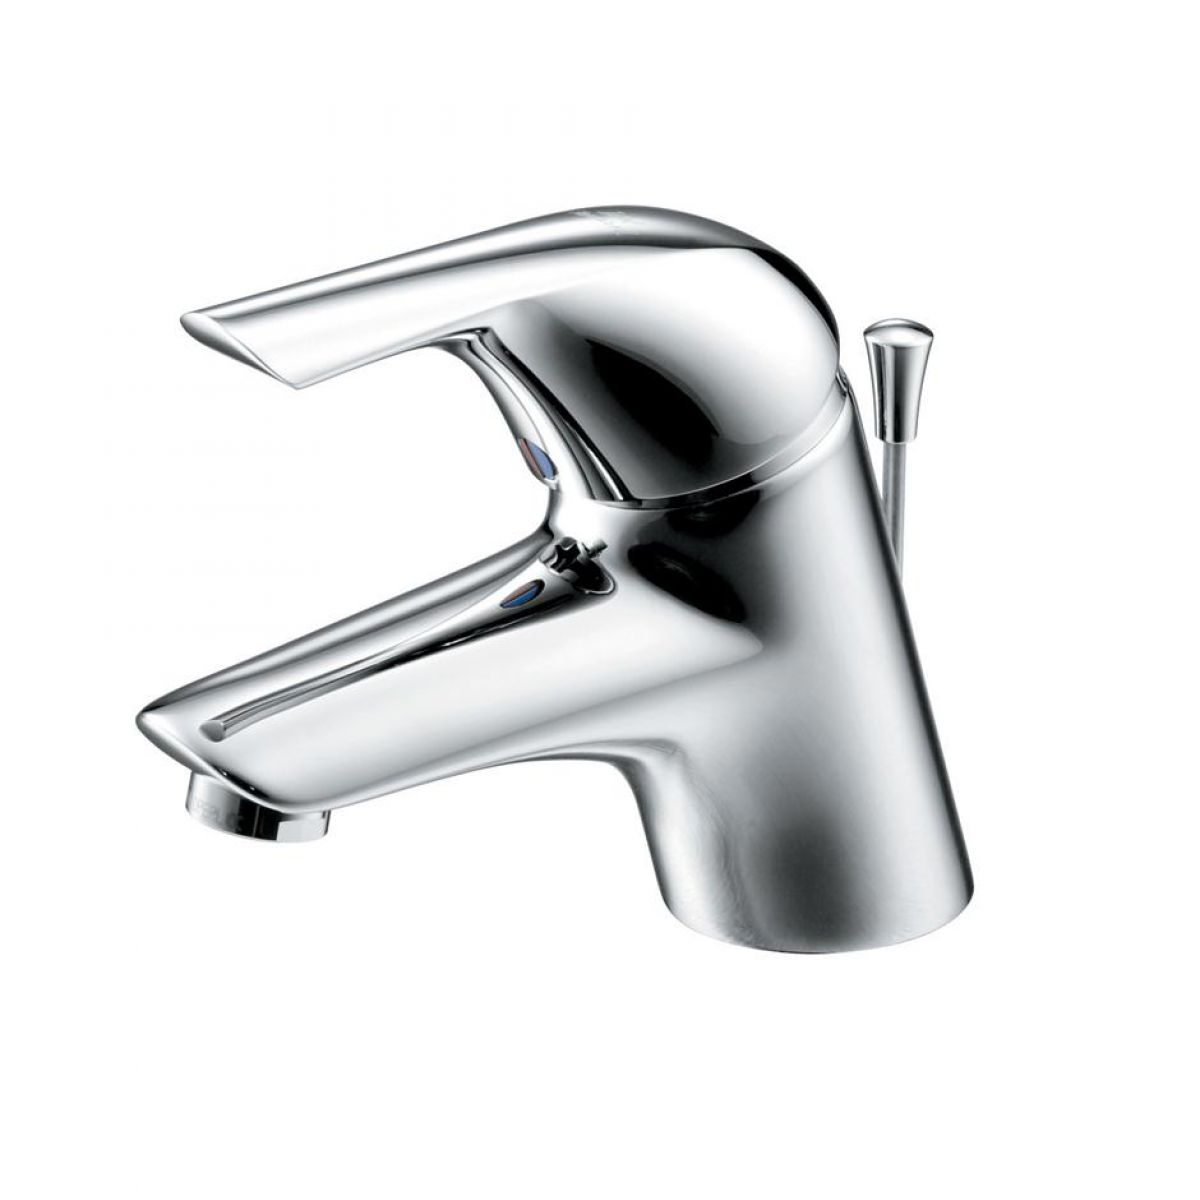 Ideal Standard Ceraplan SL Mono Basin Mixer : UK Bathrooms